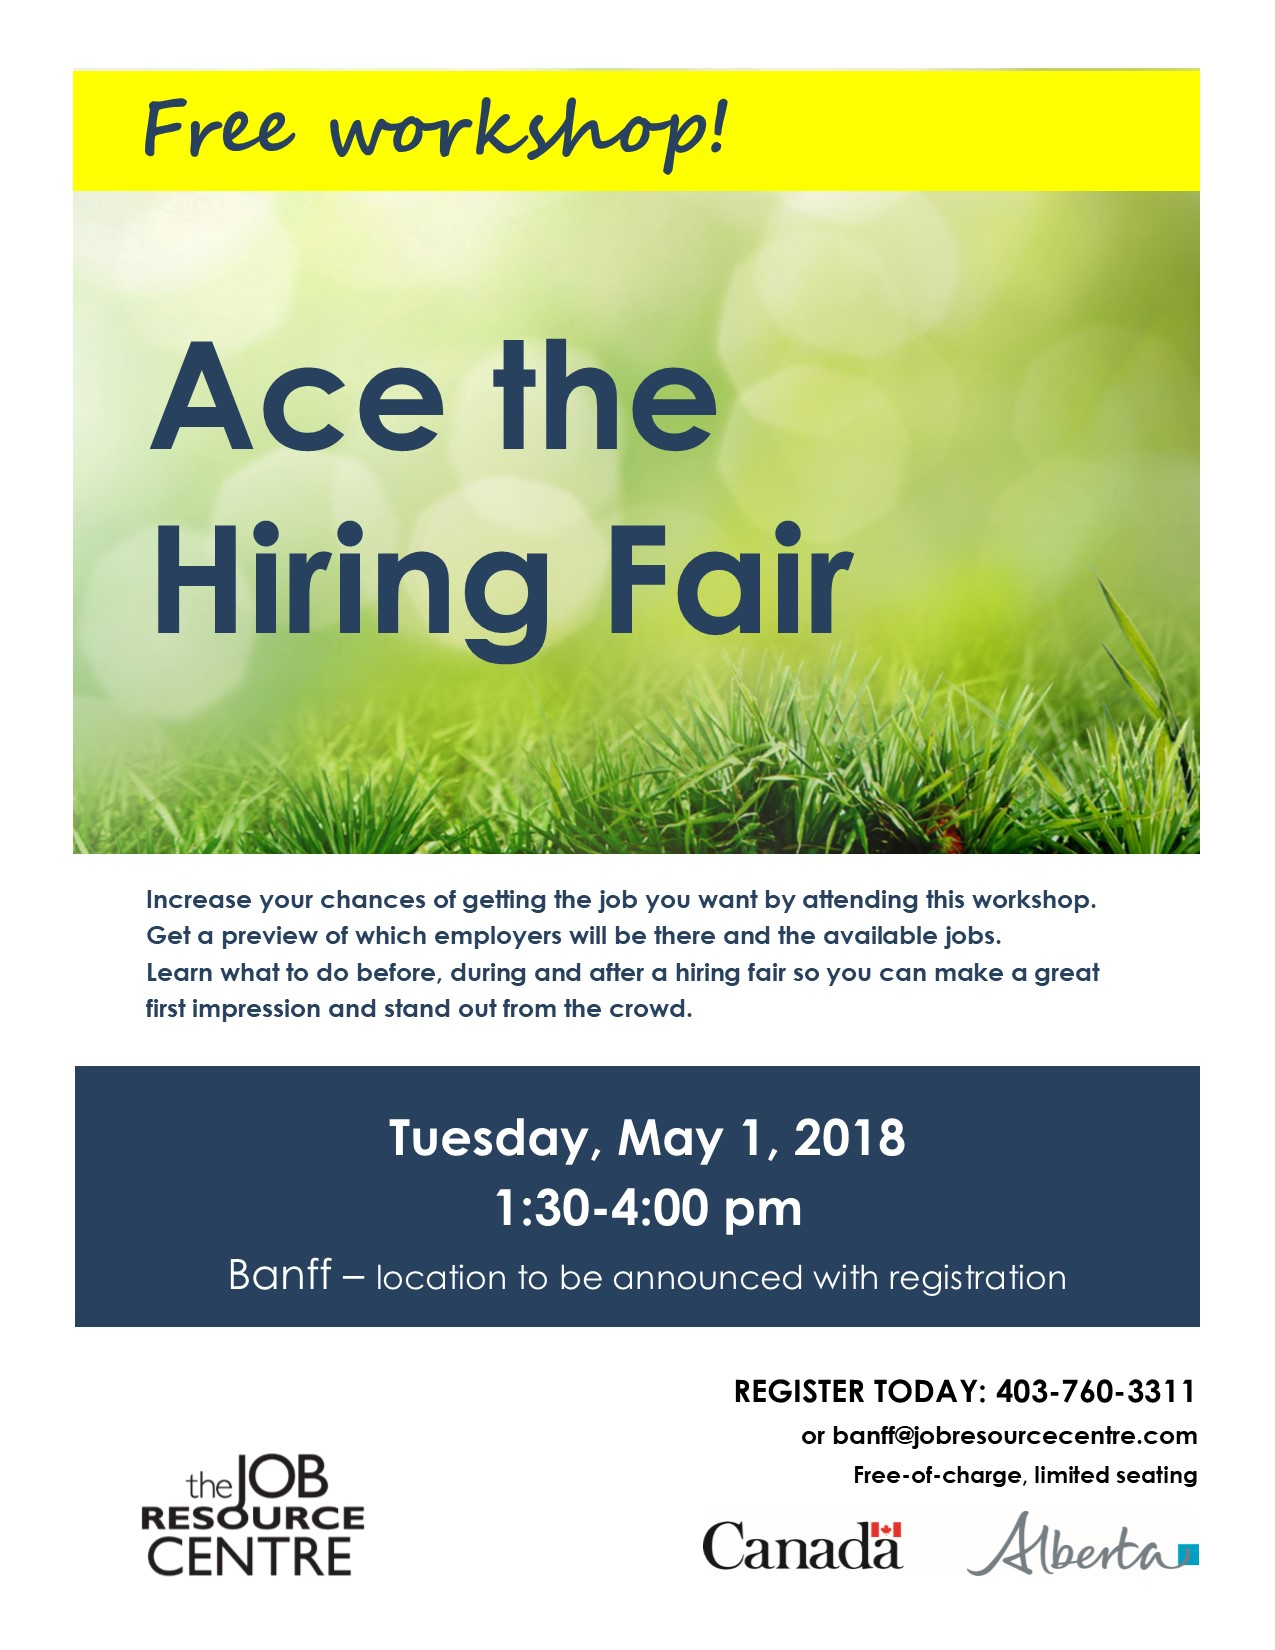 Banff Ace the Hiring Fair poster spring 2018 (1).jpg